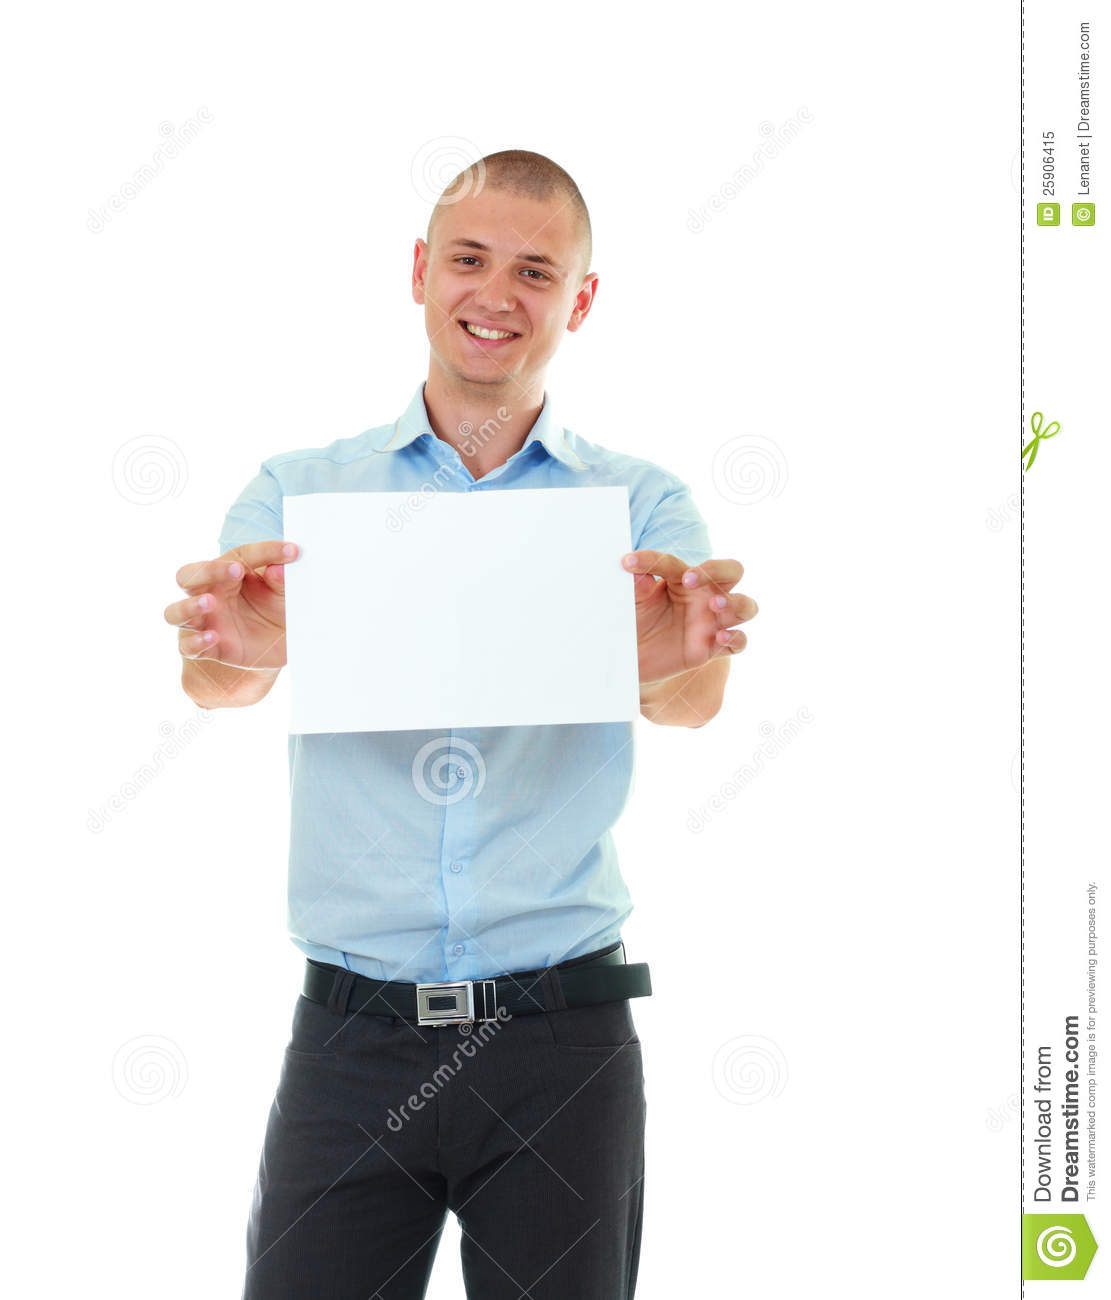 Young Man Holding Blank Card Stock Image